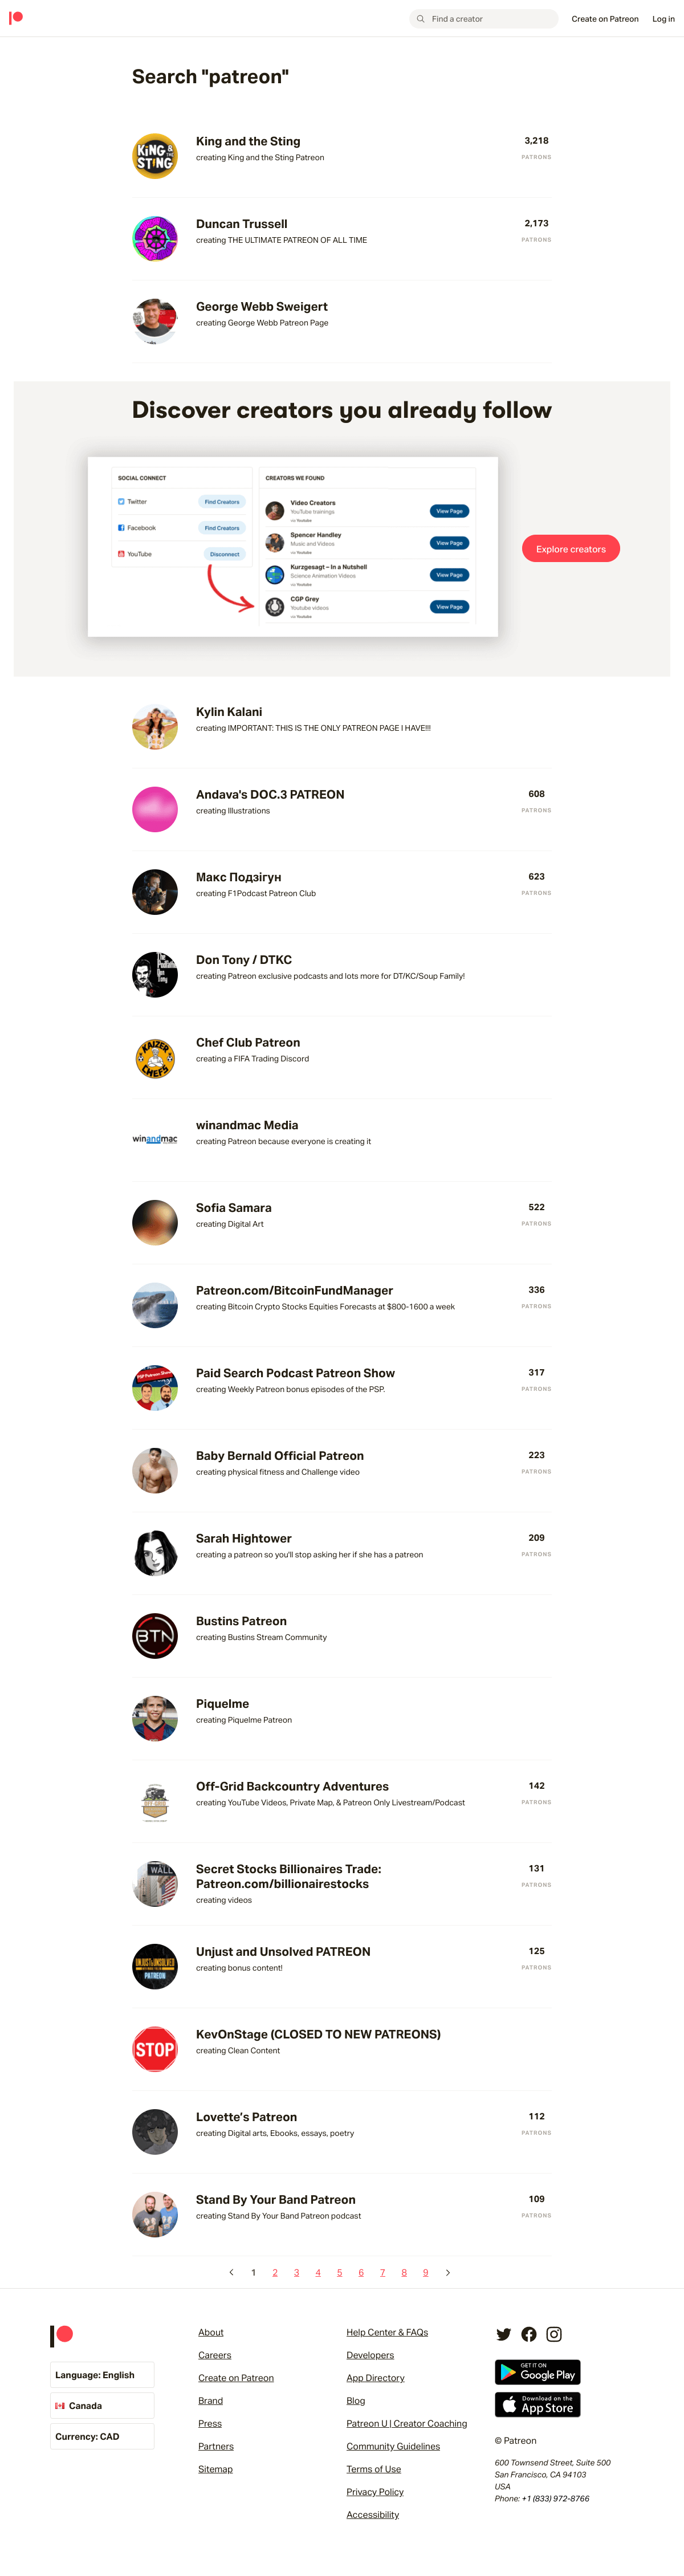 Patreon - Search results page